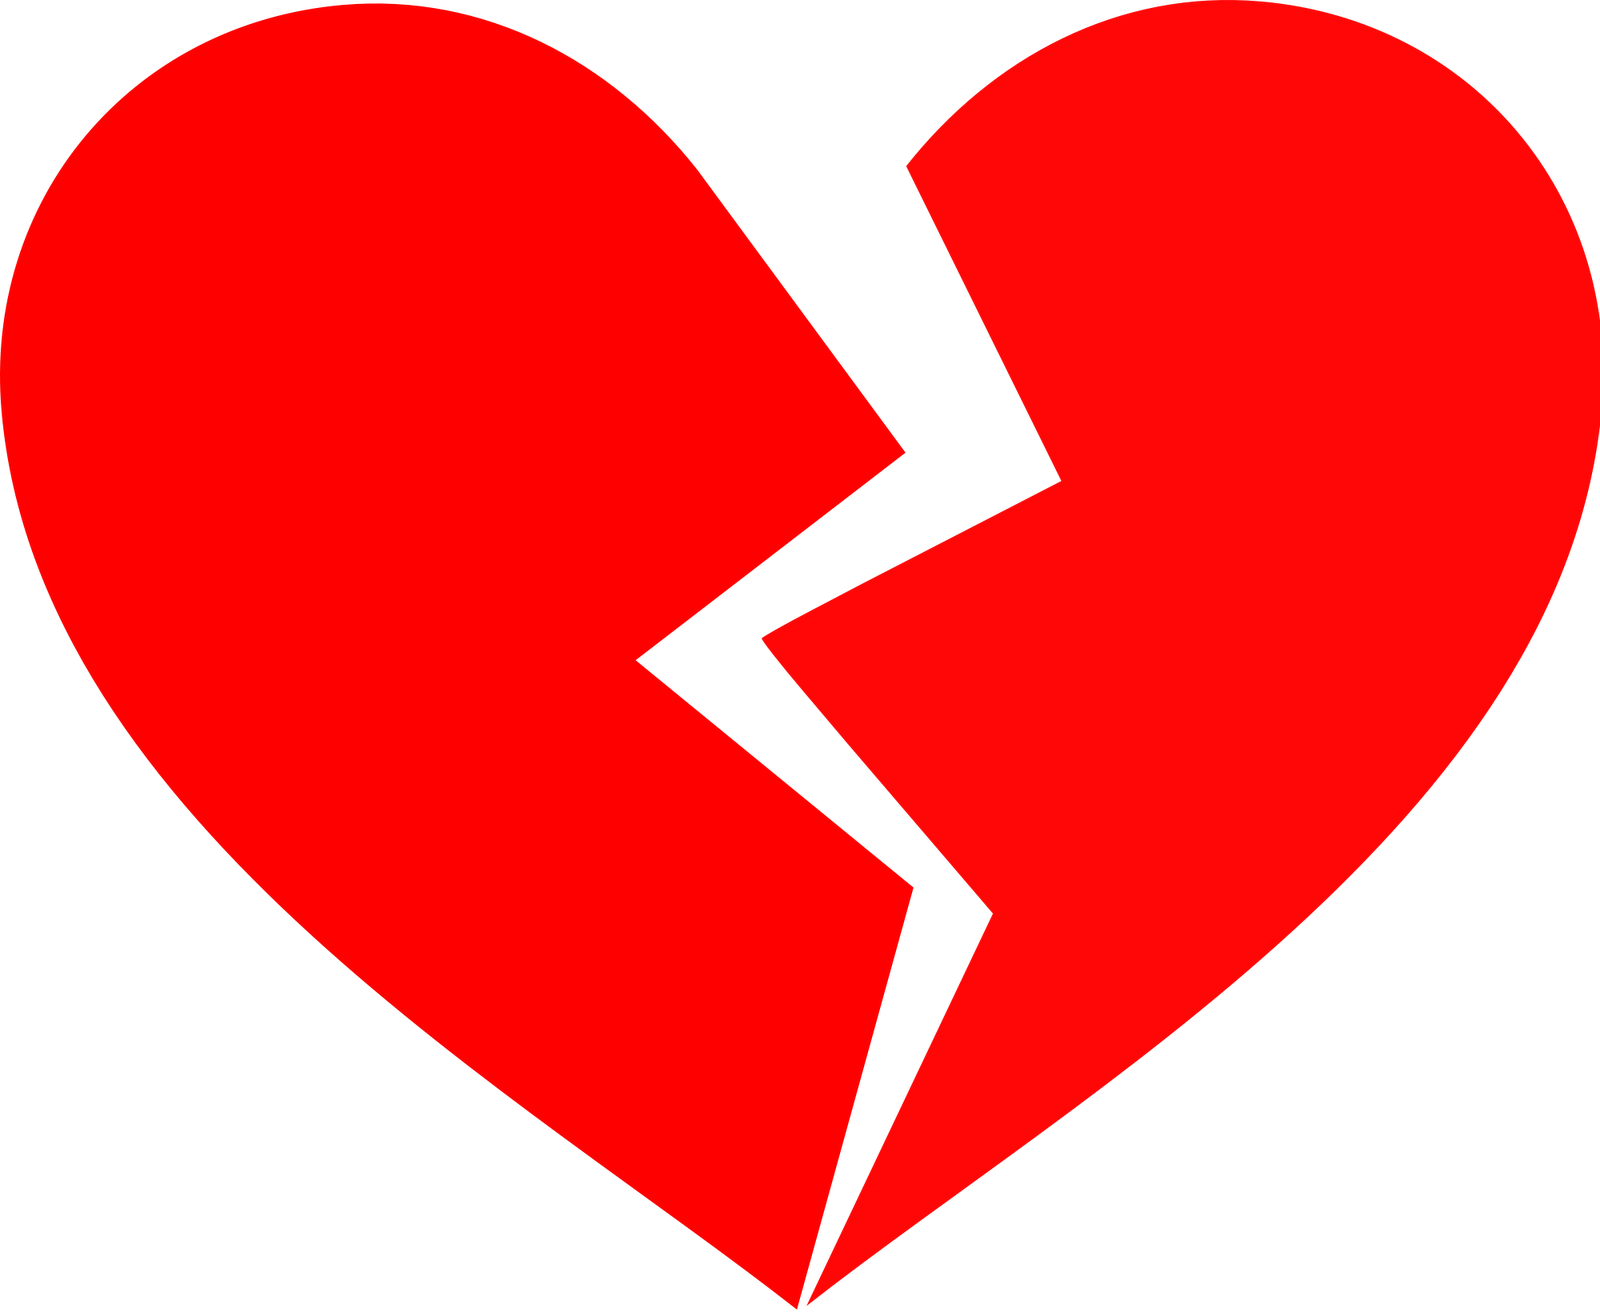 Broken . Heart clipart person jpg download